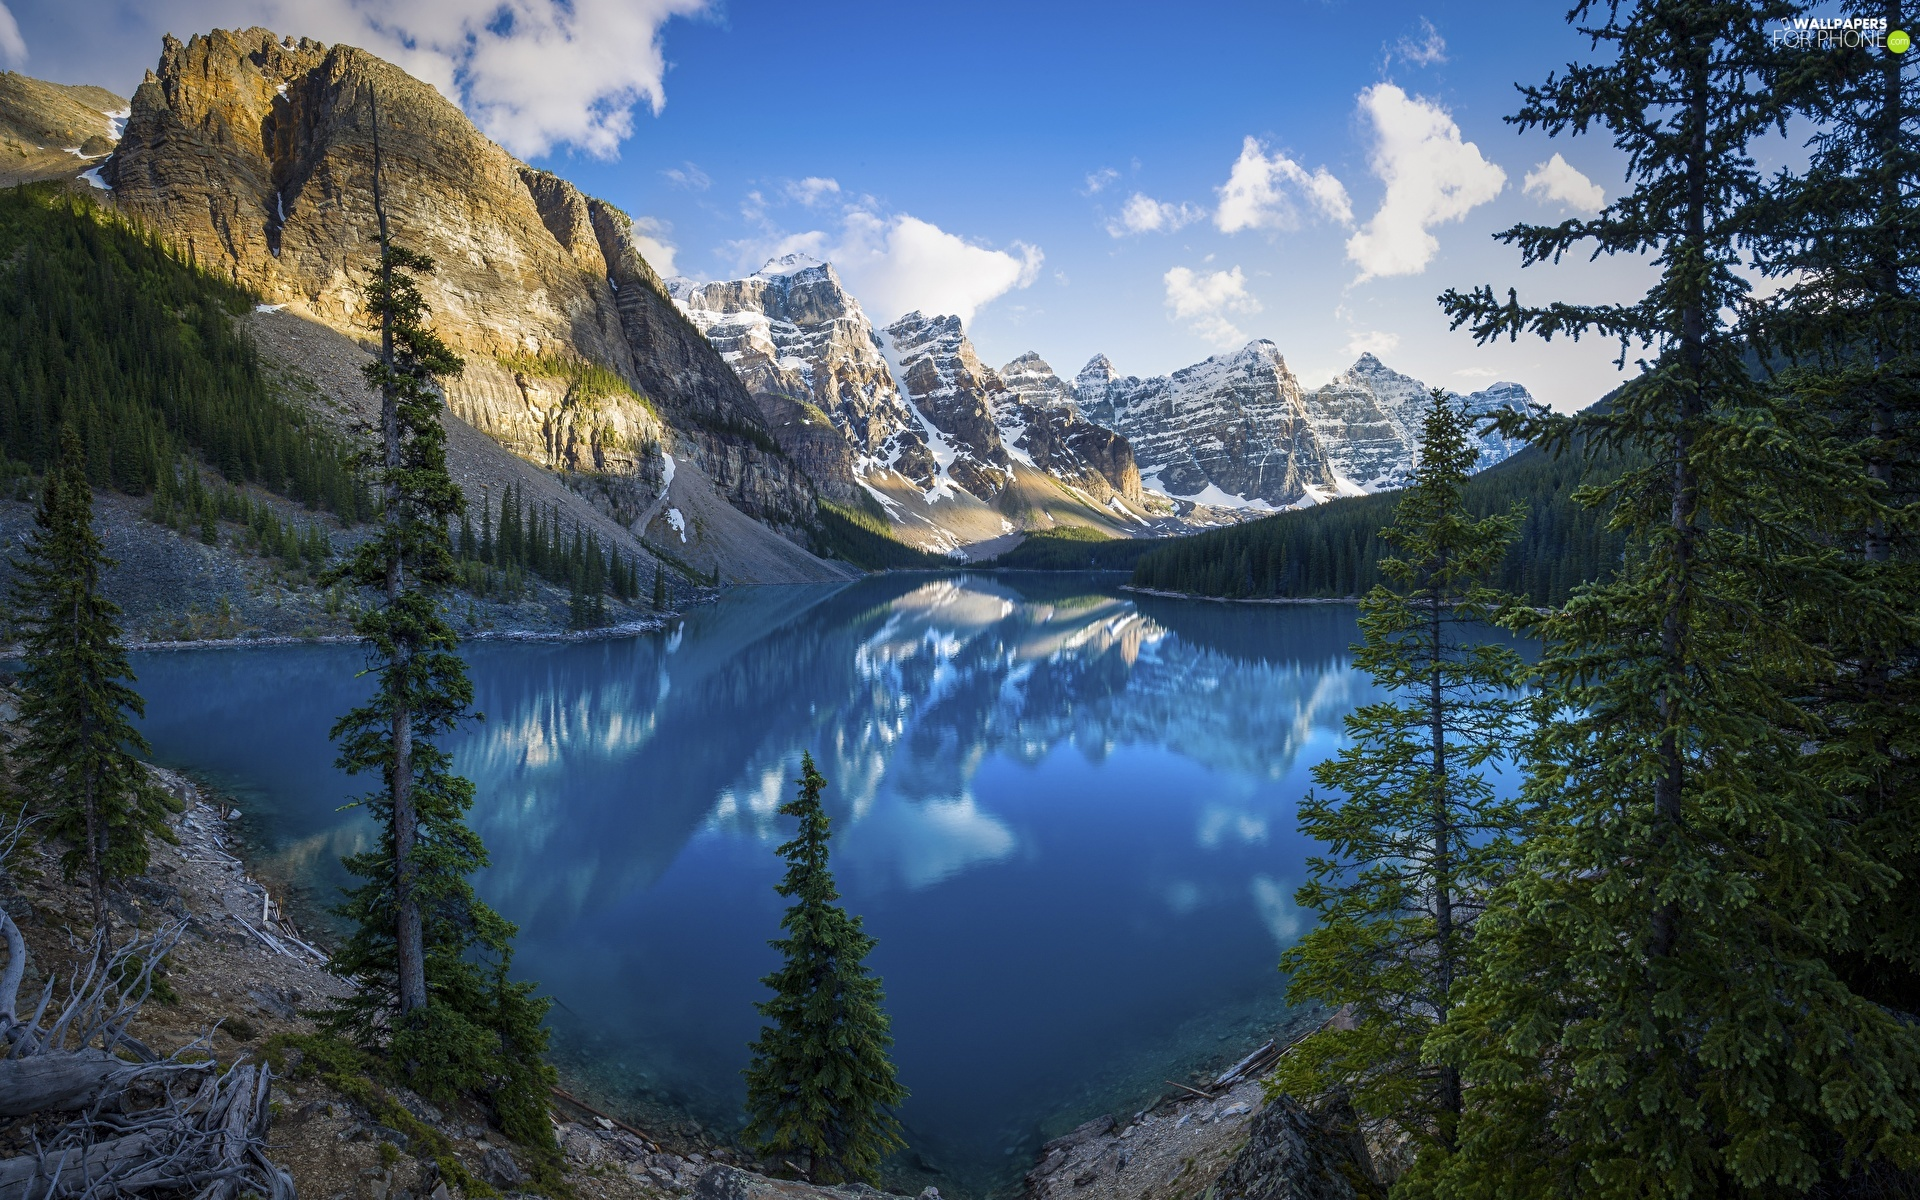 Mountains, Canada, lake, clouds, reflection, Spruces, viewes, Province of Alberta, Banff National Park, trees, Moraine Lake